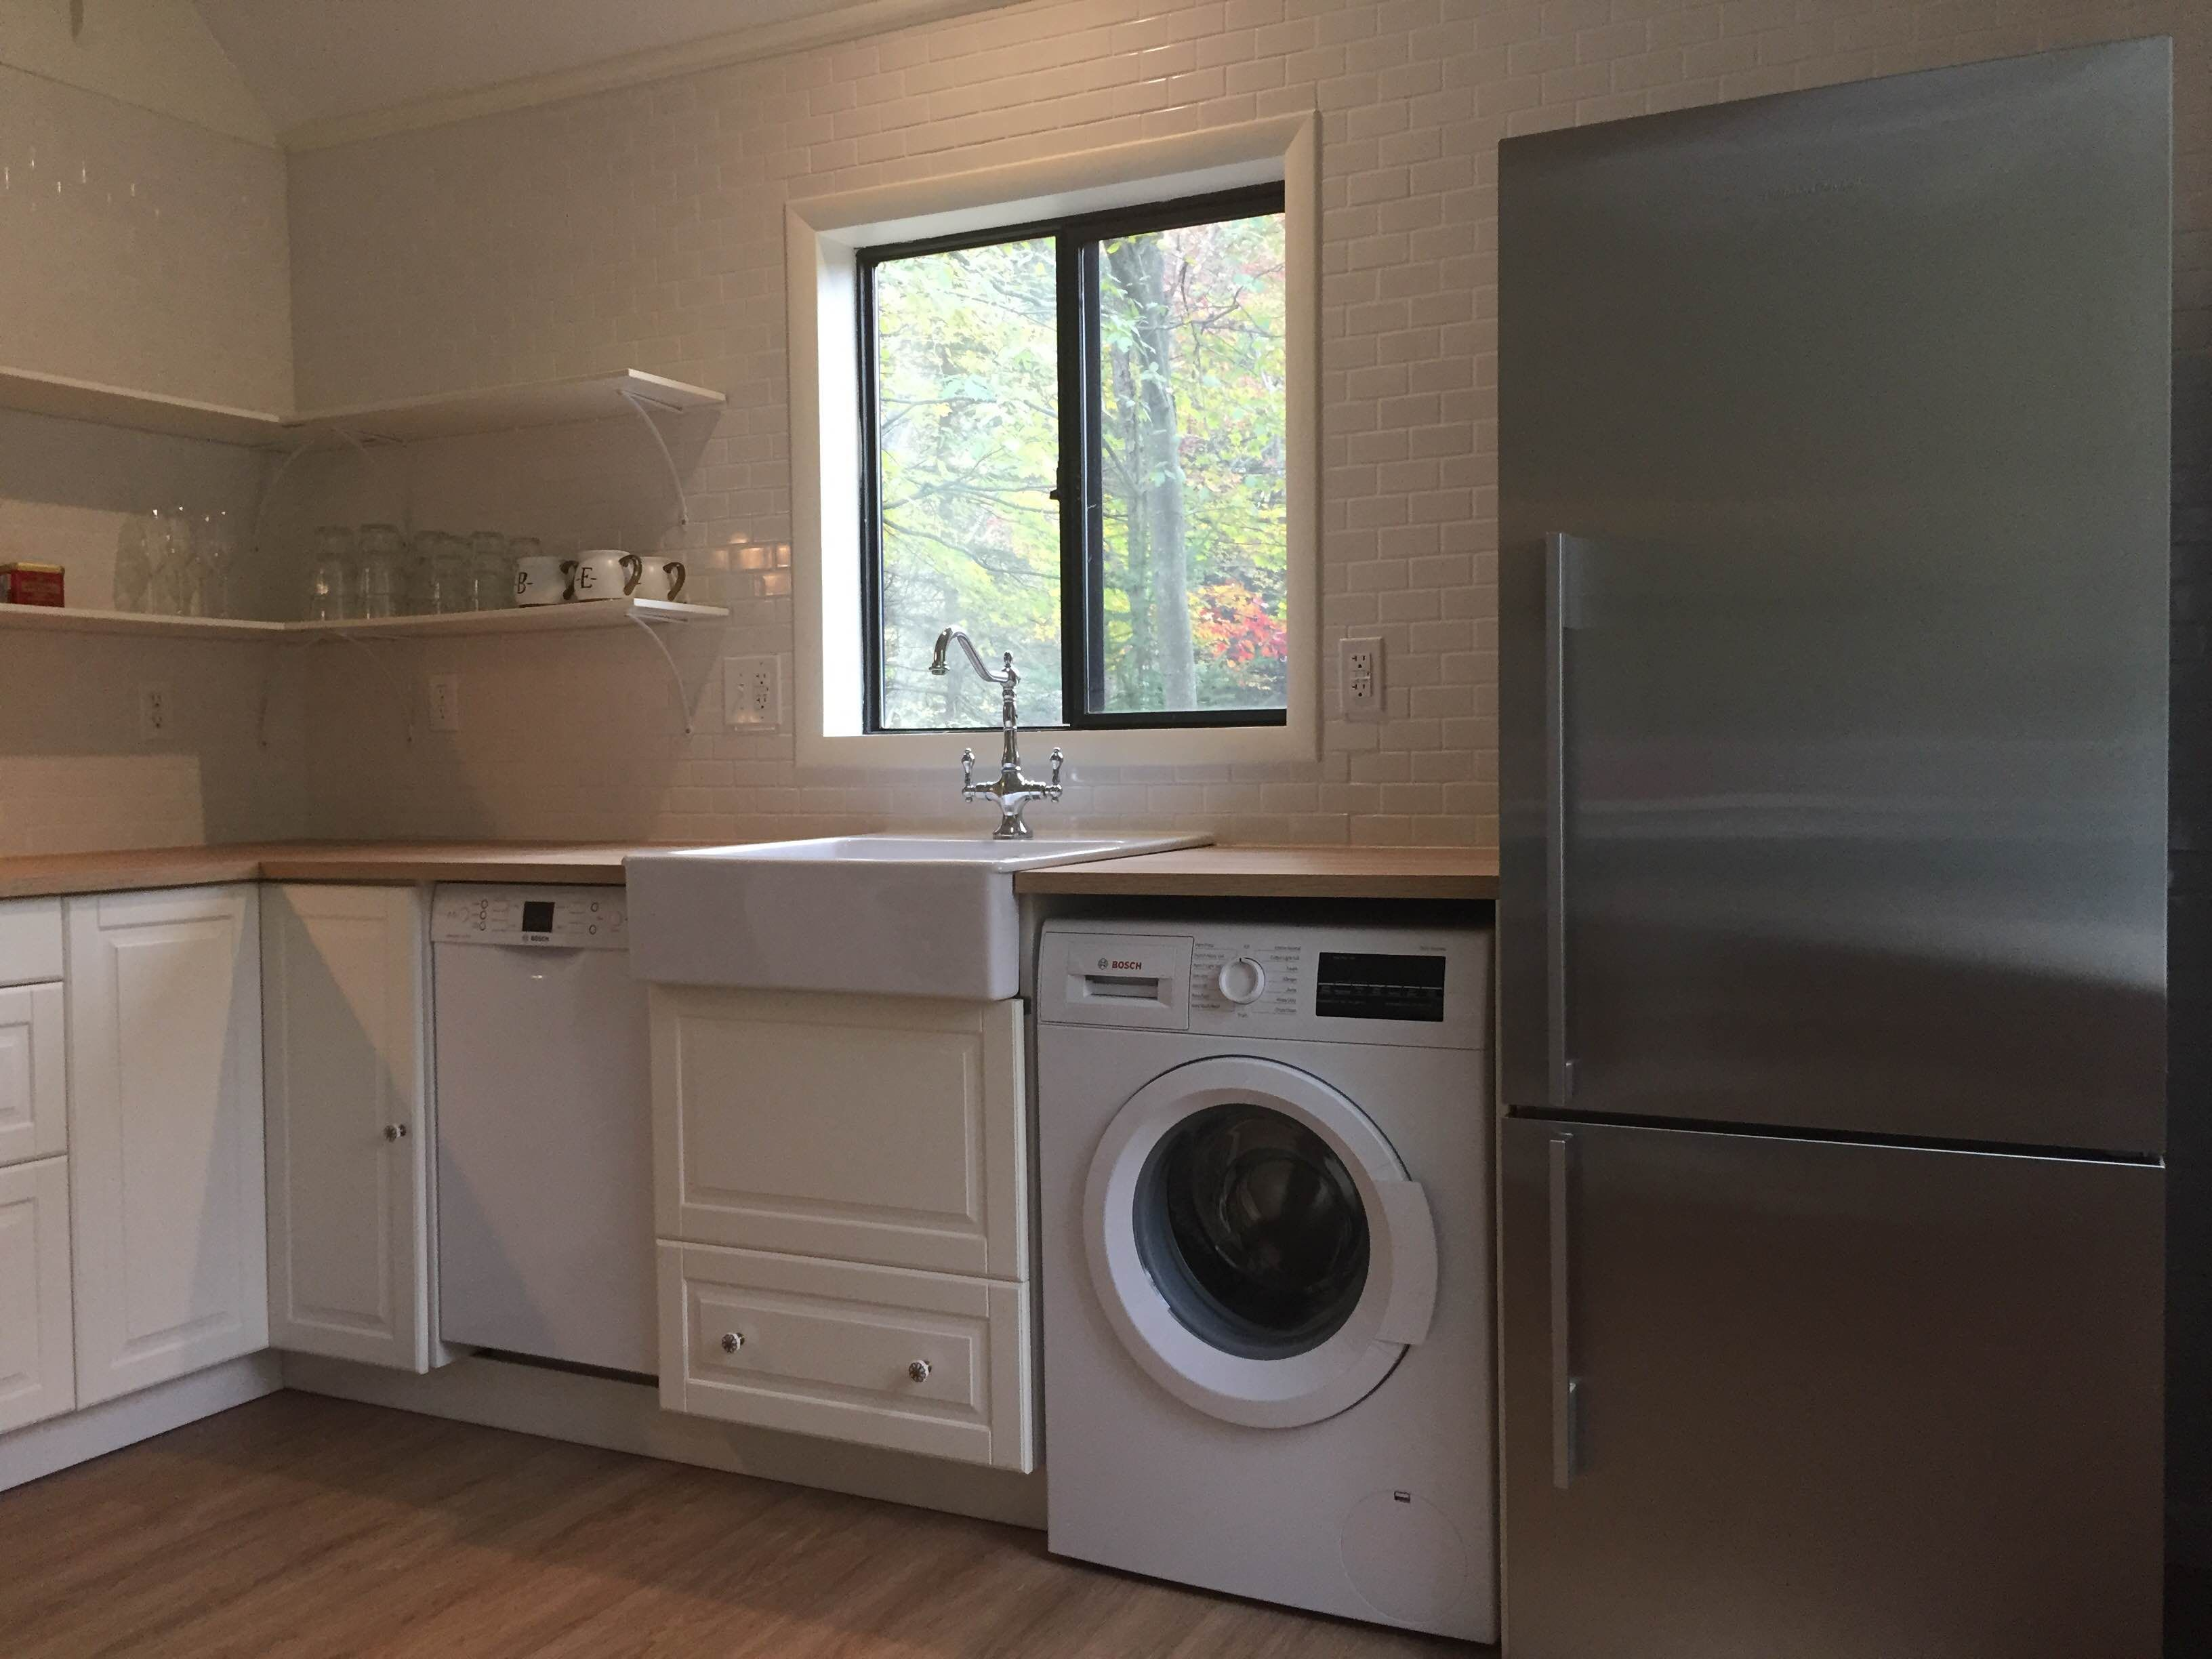 Rashonda Chose European Sized Appliances So She Could Fit An Oven, Sink,  Dishwasher, Washer AND Dryer Into Her Kitchen. The Dishwasher Is Only 18u201d  Wide, ...